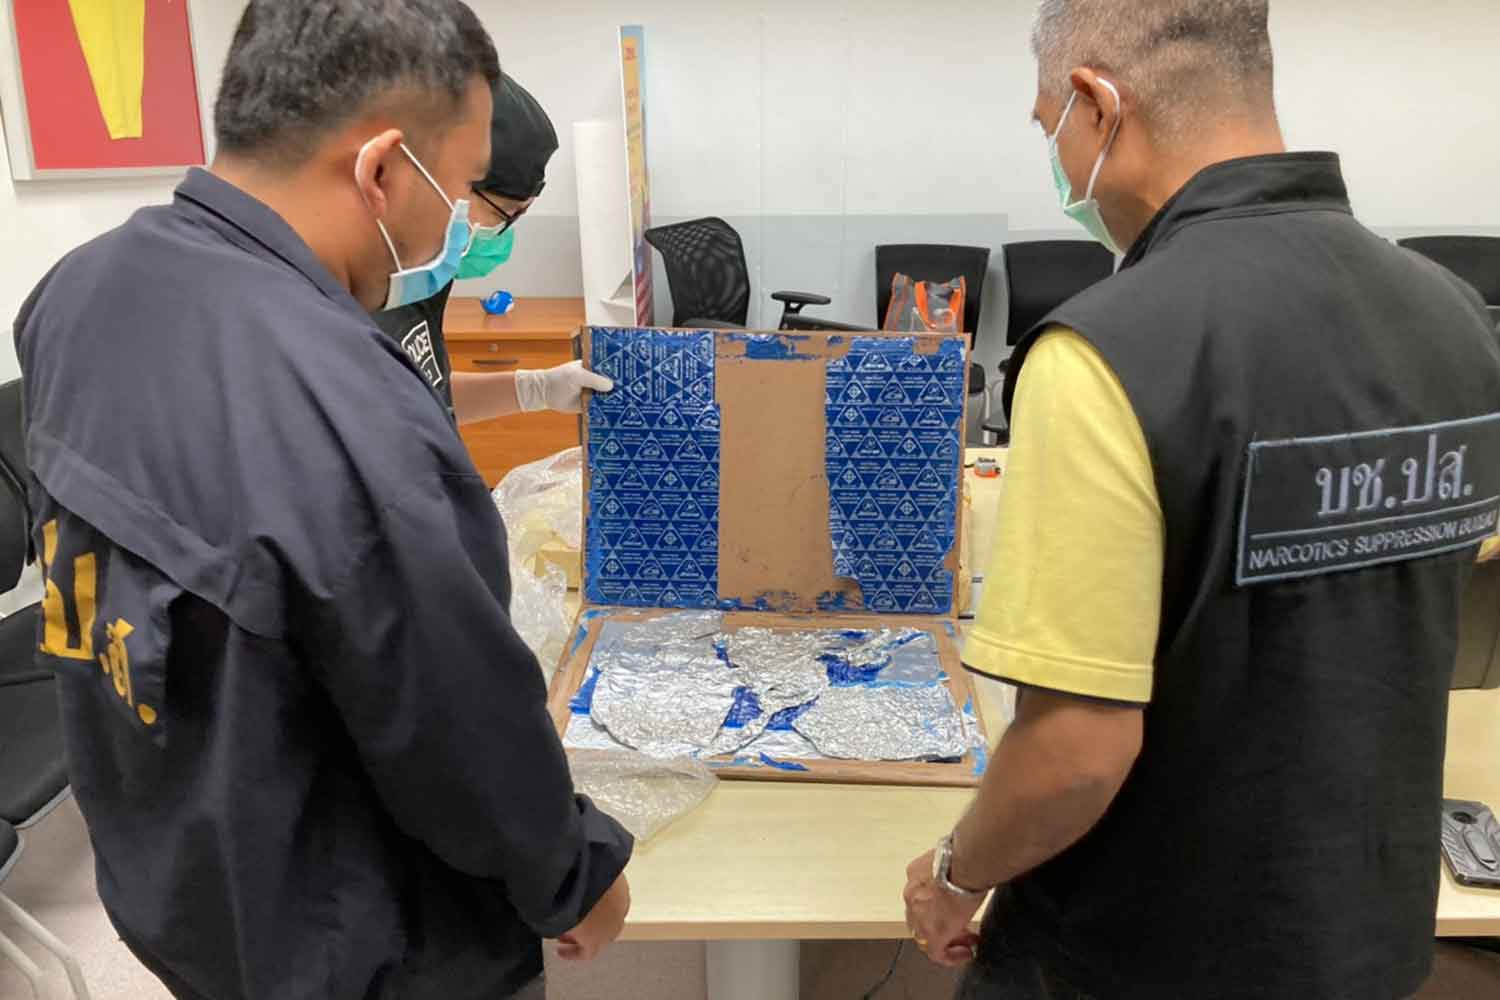 Anti-narcotic officials find thin packs of heroin hidden in the photo frame at a shipping company in Samut Prakan province on Monday. (Photo supplied)